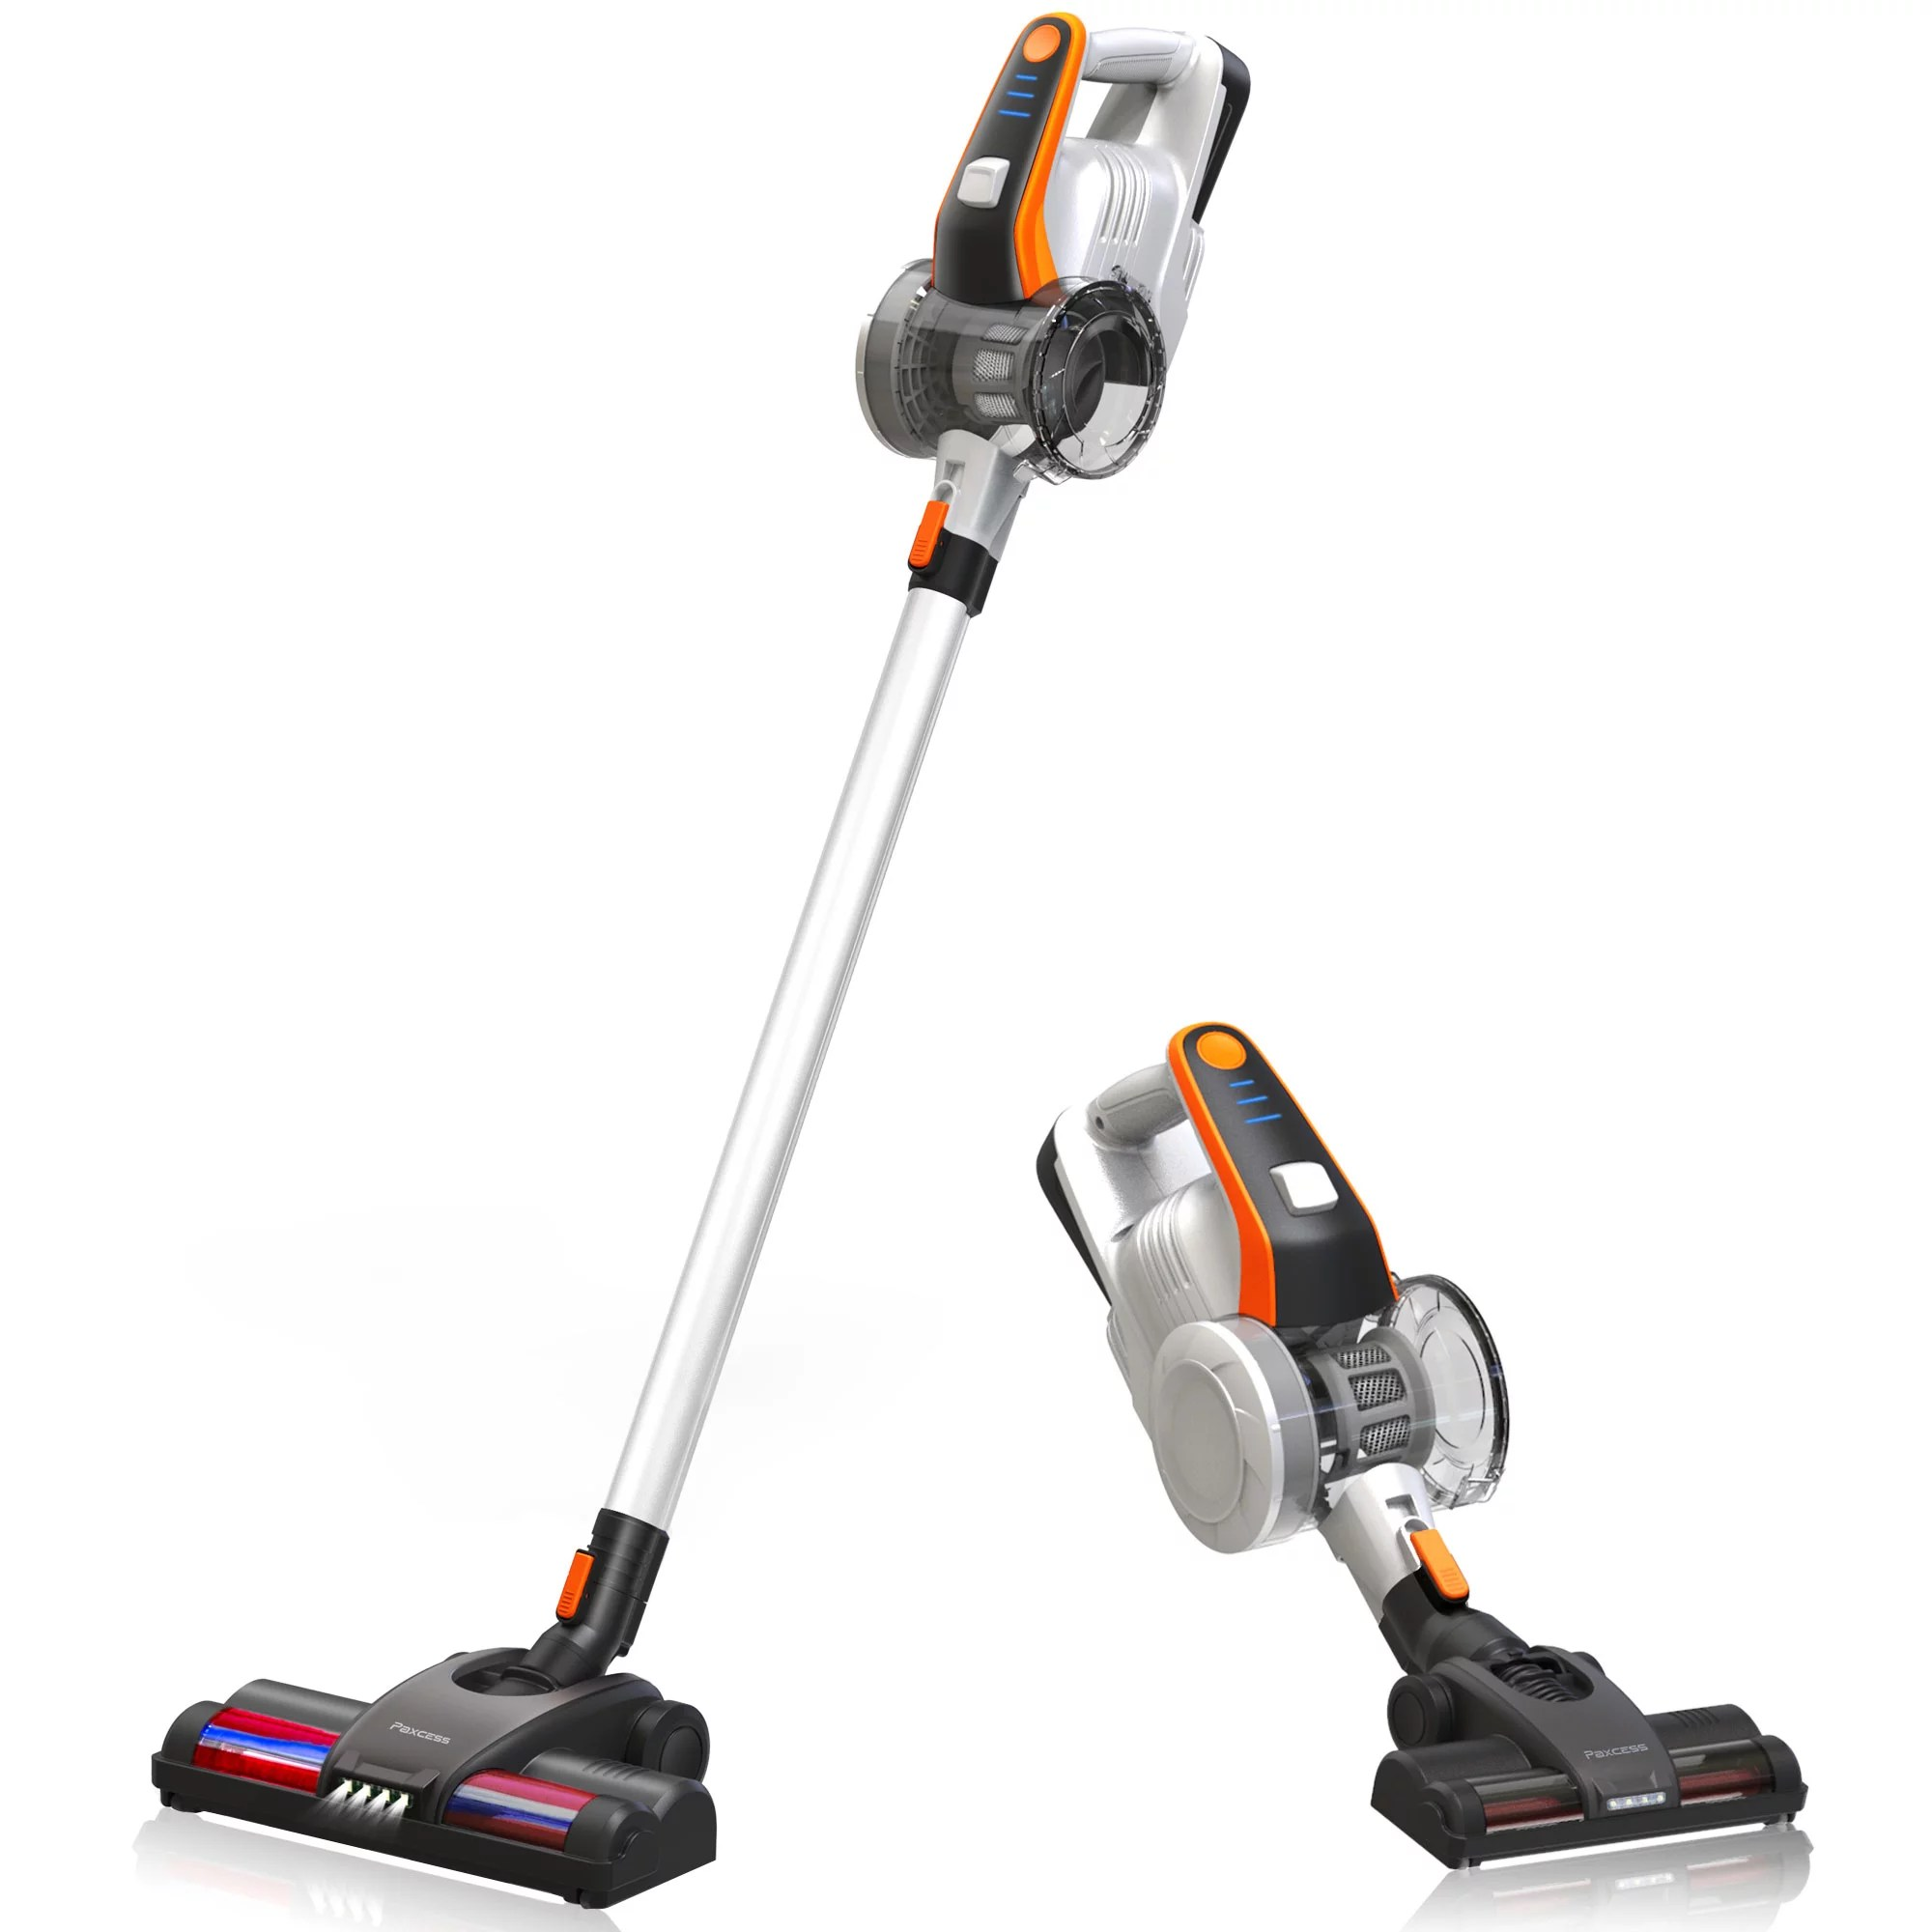 Paxcess Multi Surface Cordless Stick Vacuum Cleaner Walmart Com Walmart Com